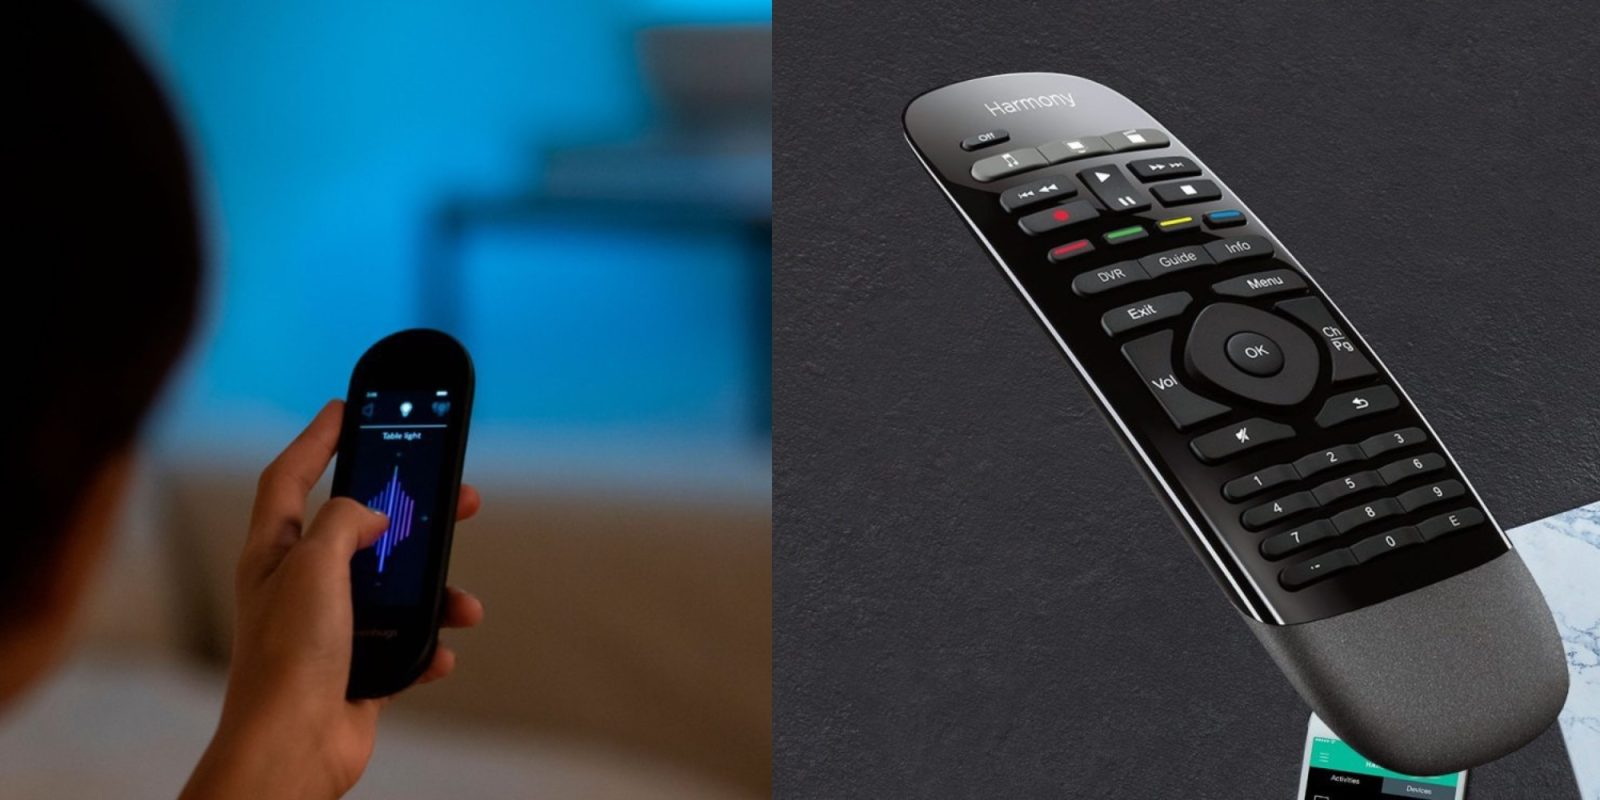 Sevenhugs Smart Remote U gets 40% discount to new low at